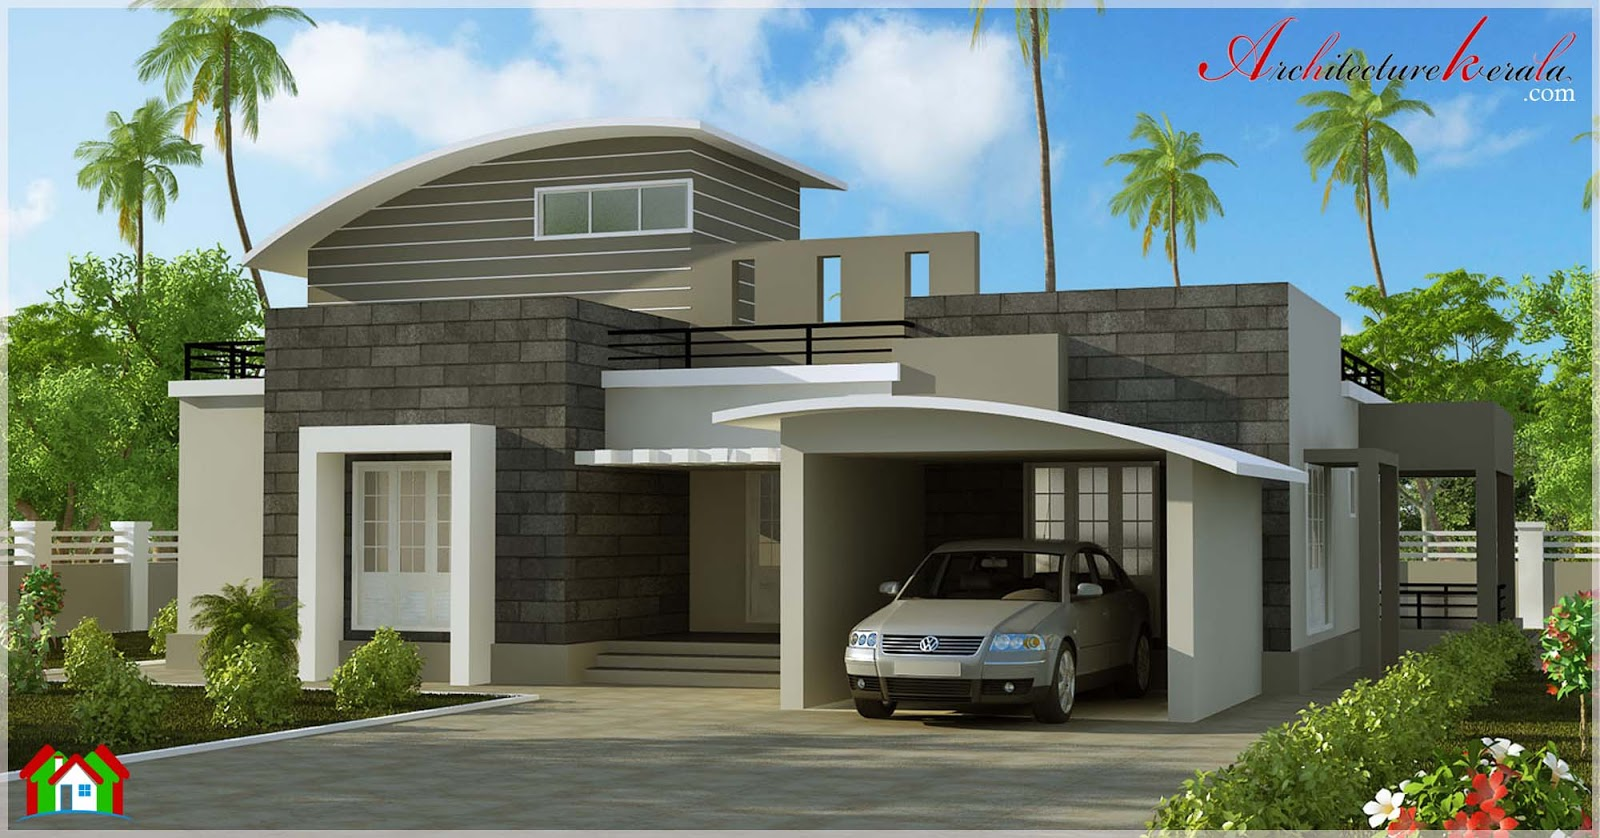 Contemporary style villa elevation architecture kerala for Contemporary style homes in kerala